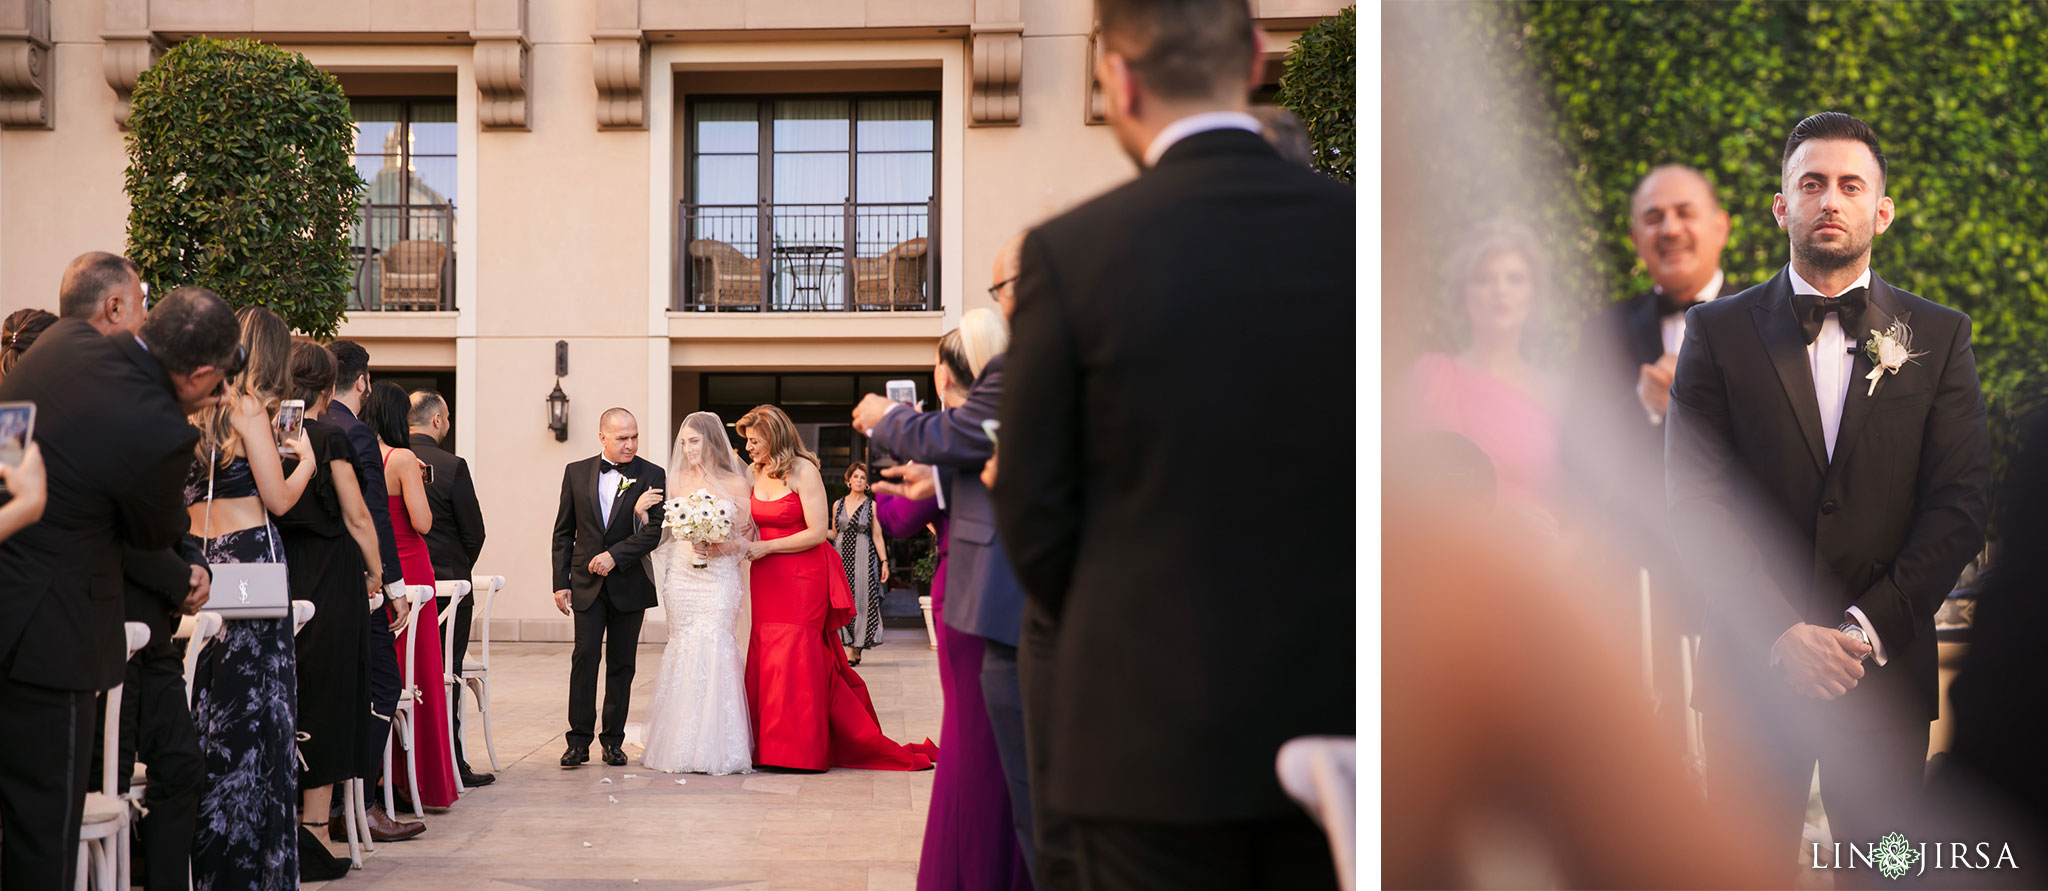 24 montage beverly hills persian wedding photography